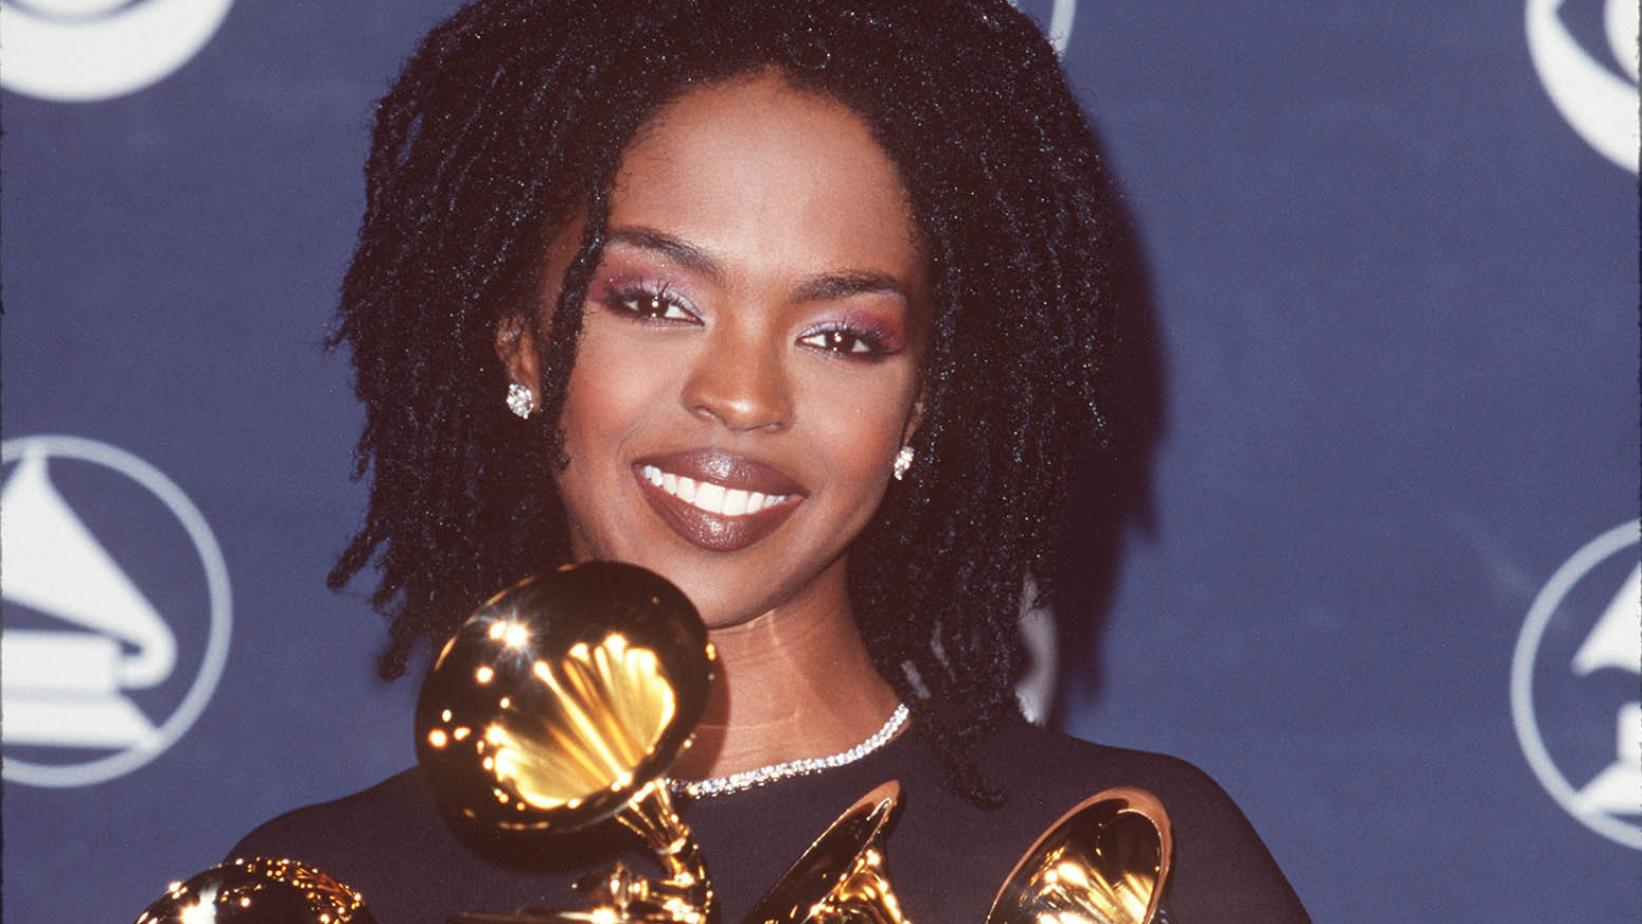 Lauryn Hill at the 41st GRAMMY Awards, 1999